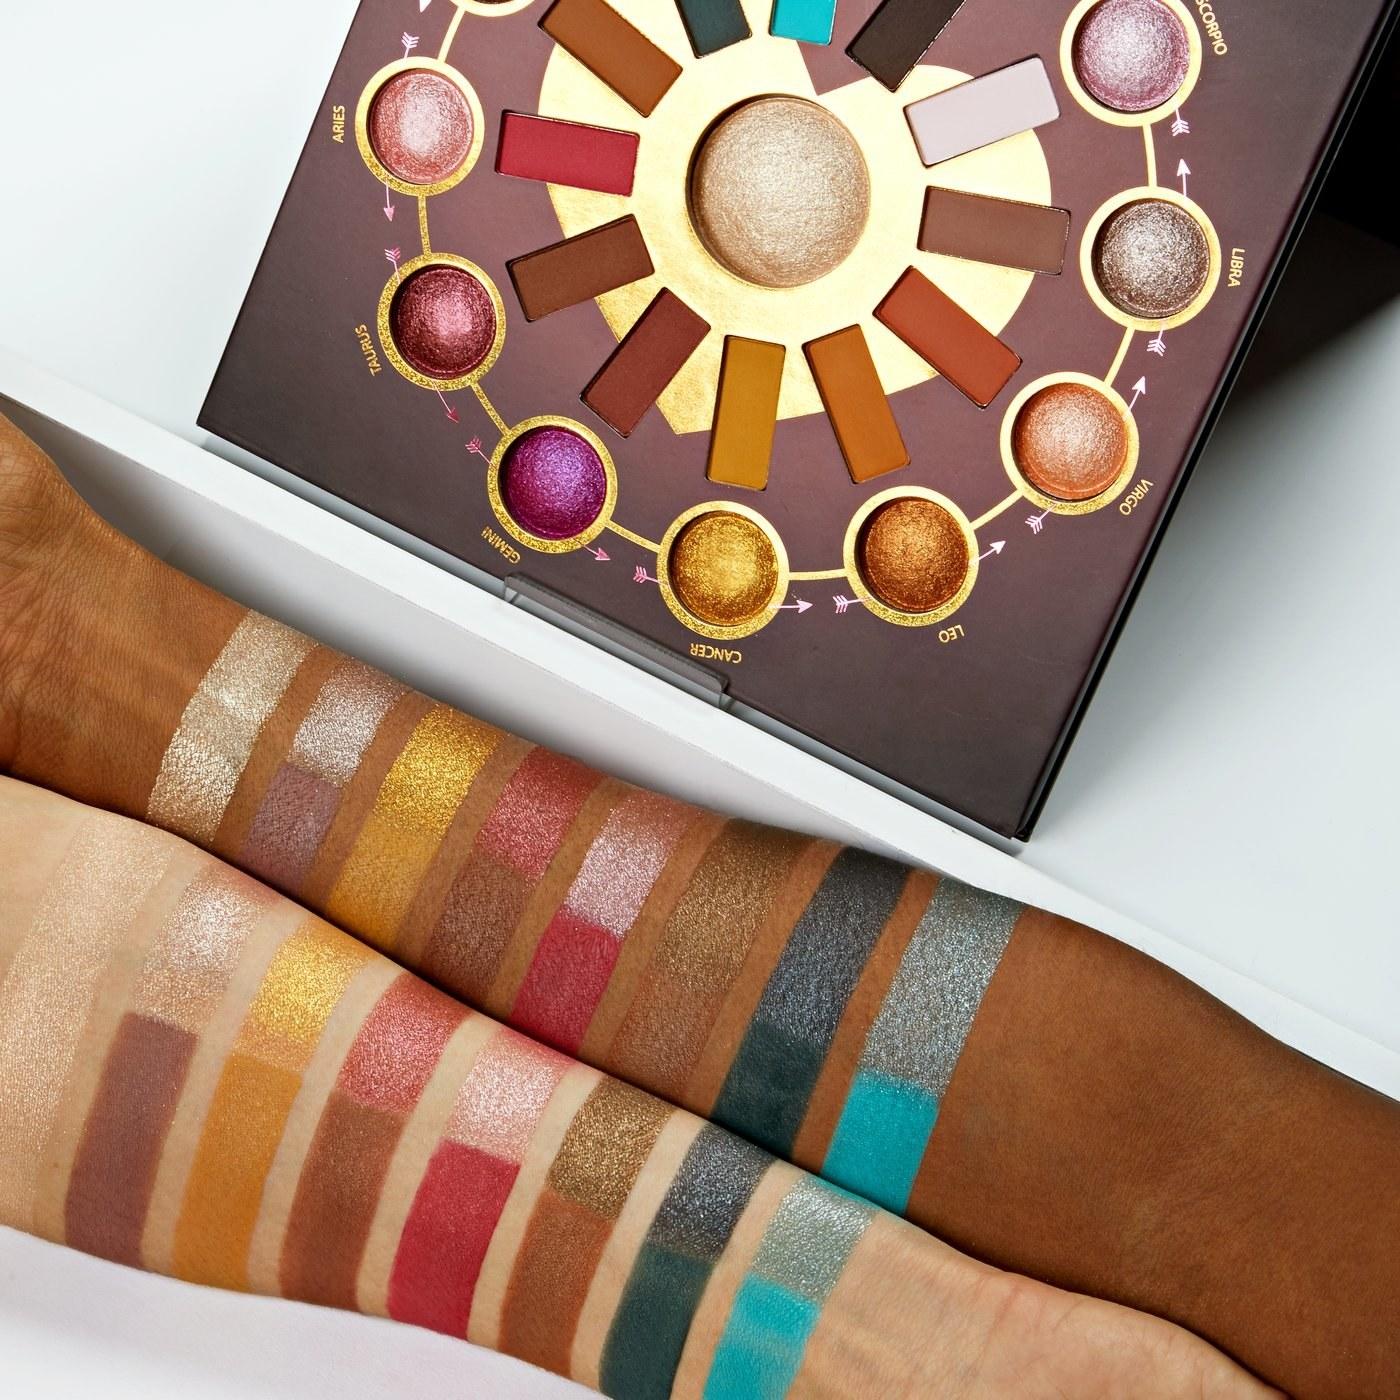 An image of part of the palette with swatches of some of the shades across light and deep skin tones